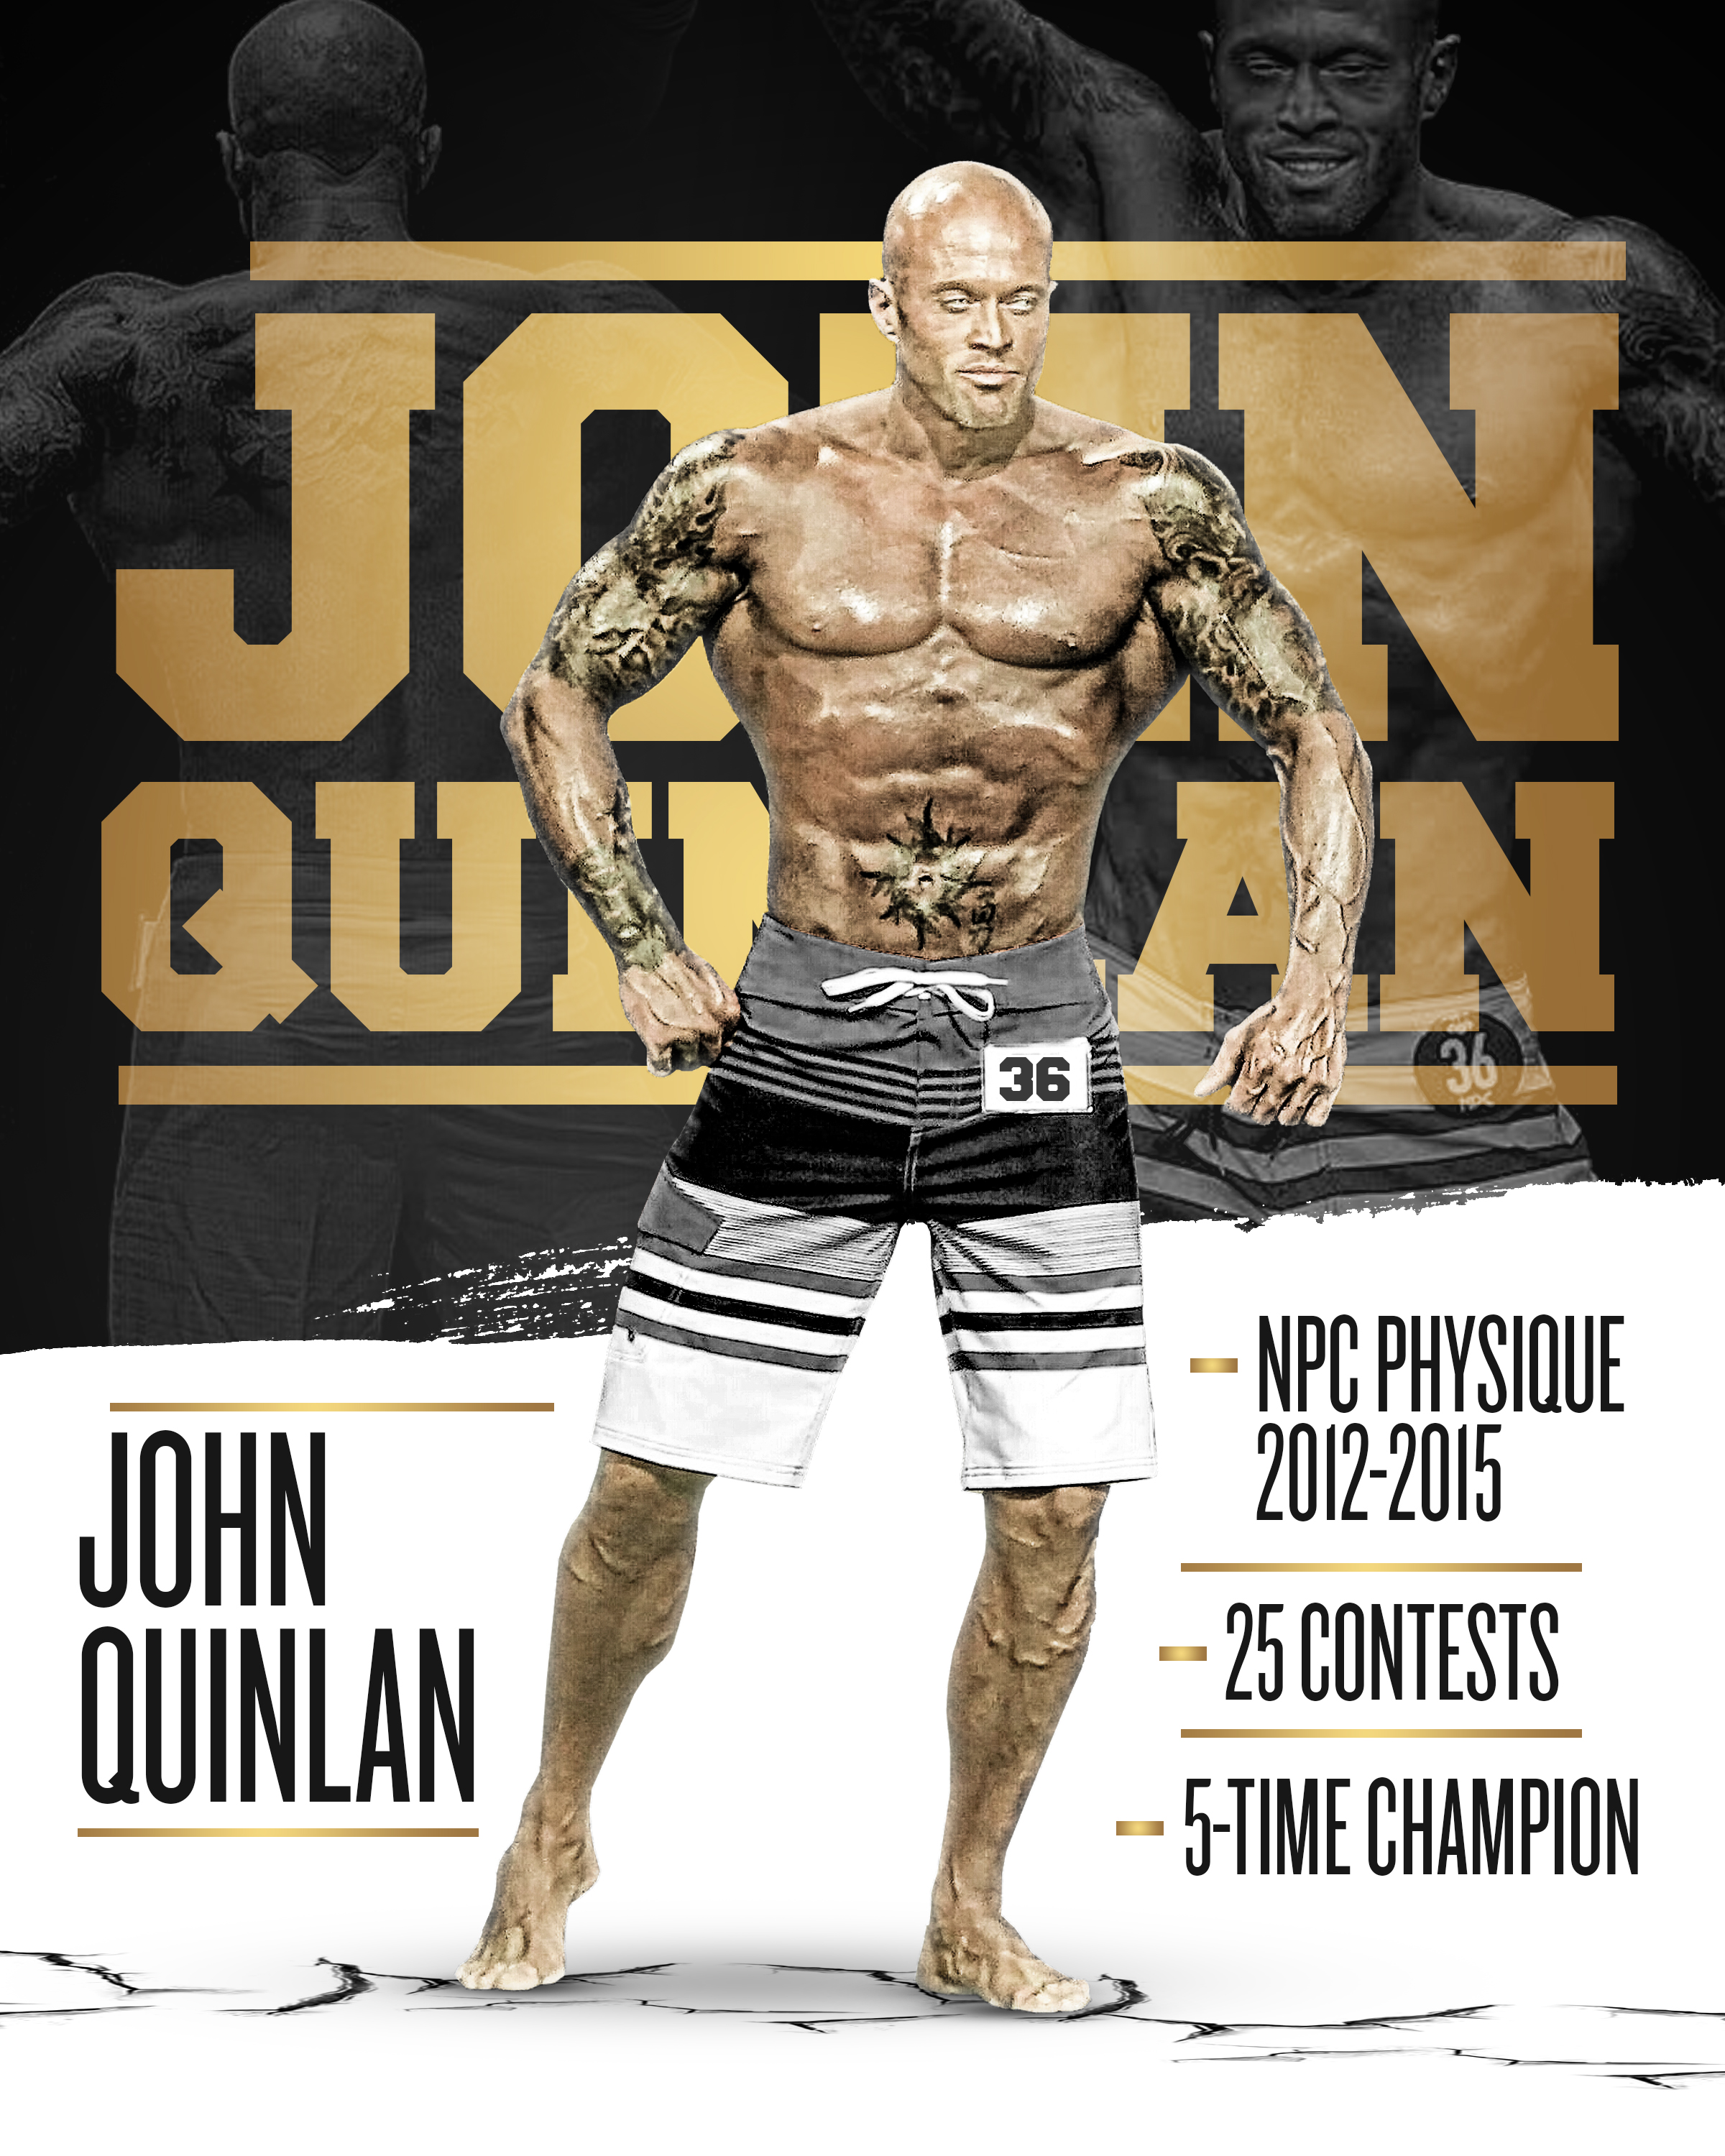 John Joseph Quinlan NPC Men's Physique Model Master commemorative Poster by Ross Maq #JohnQuinlan